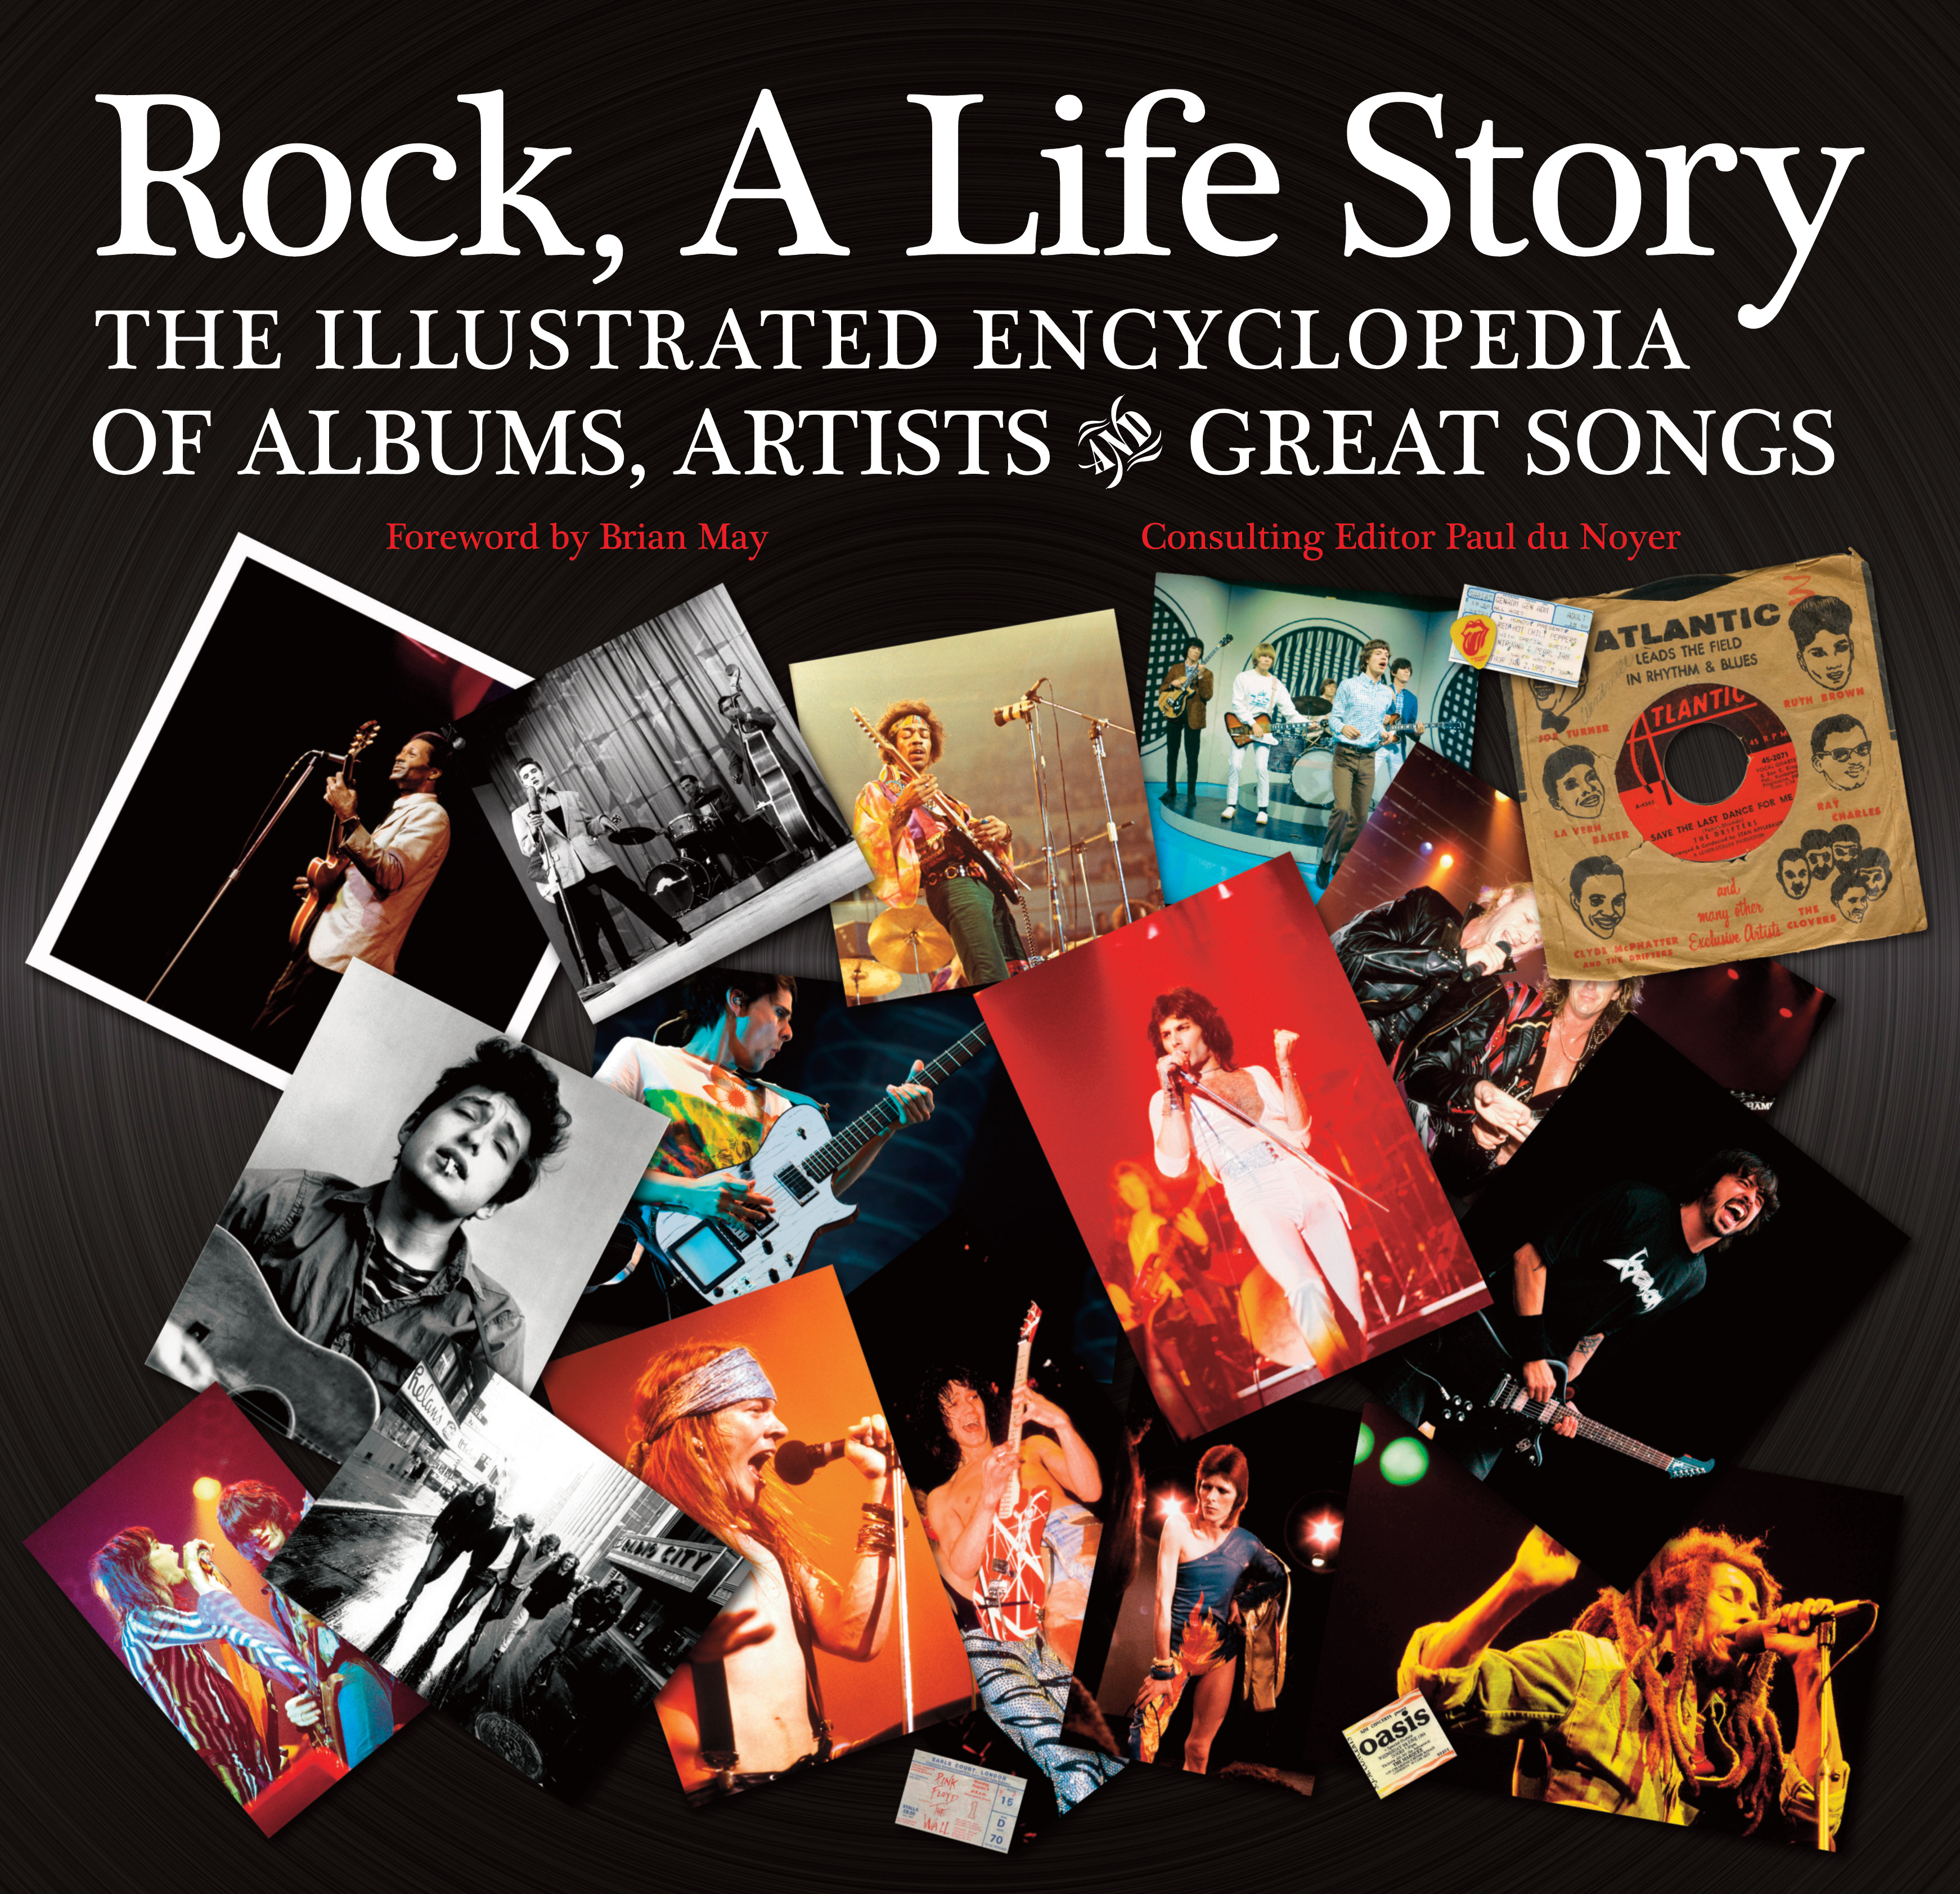 Rock, A Life Story; Flame Tree Publishing